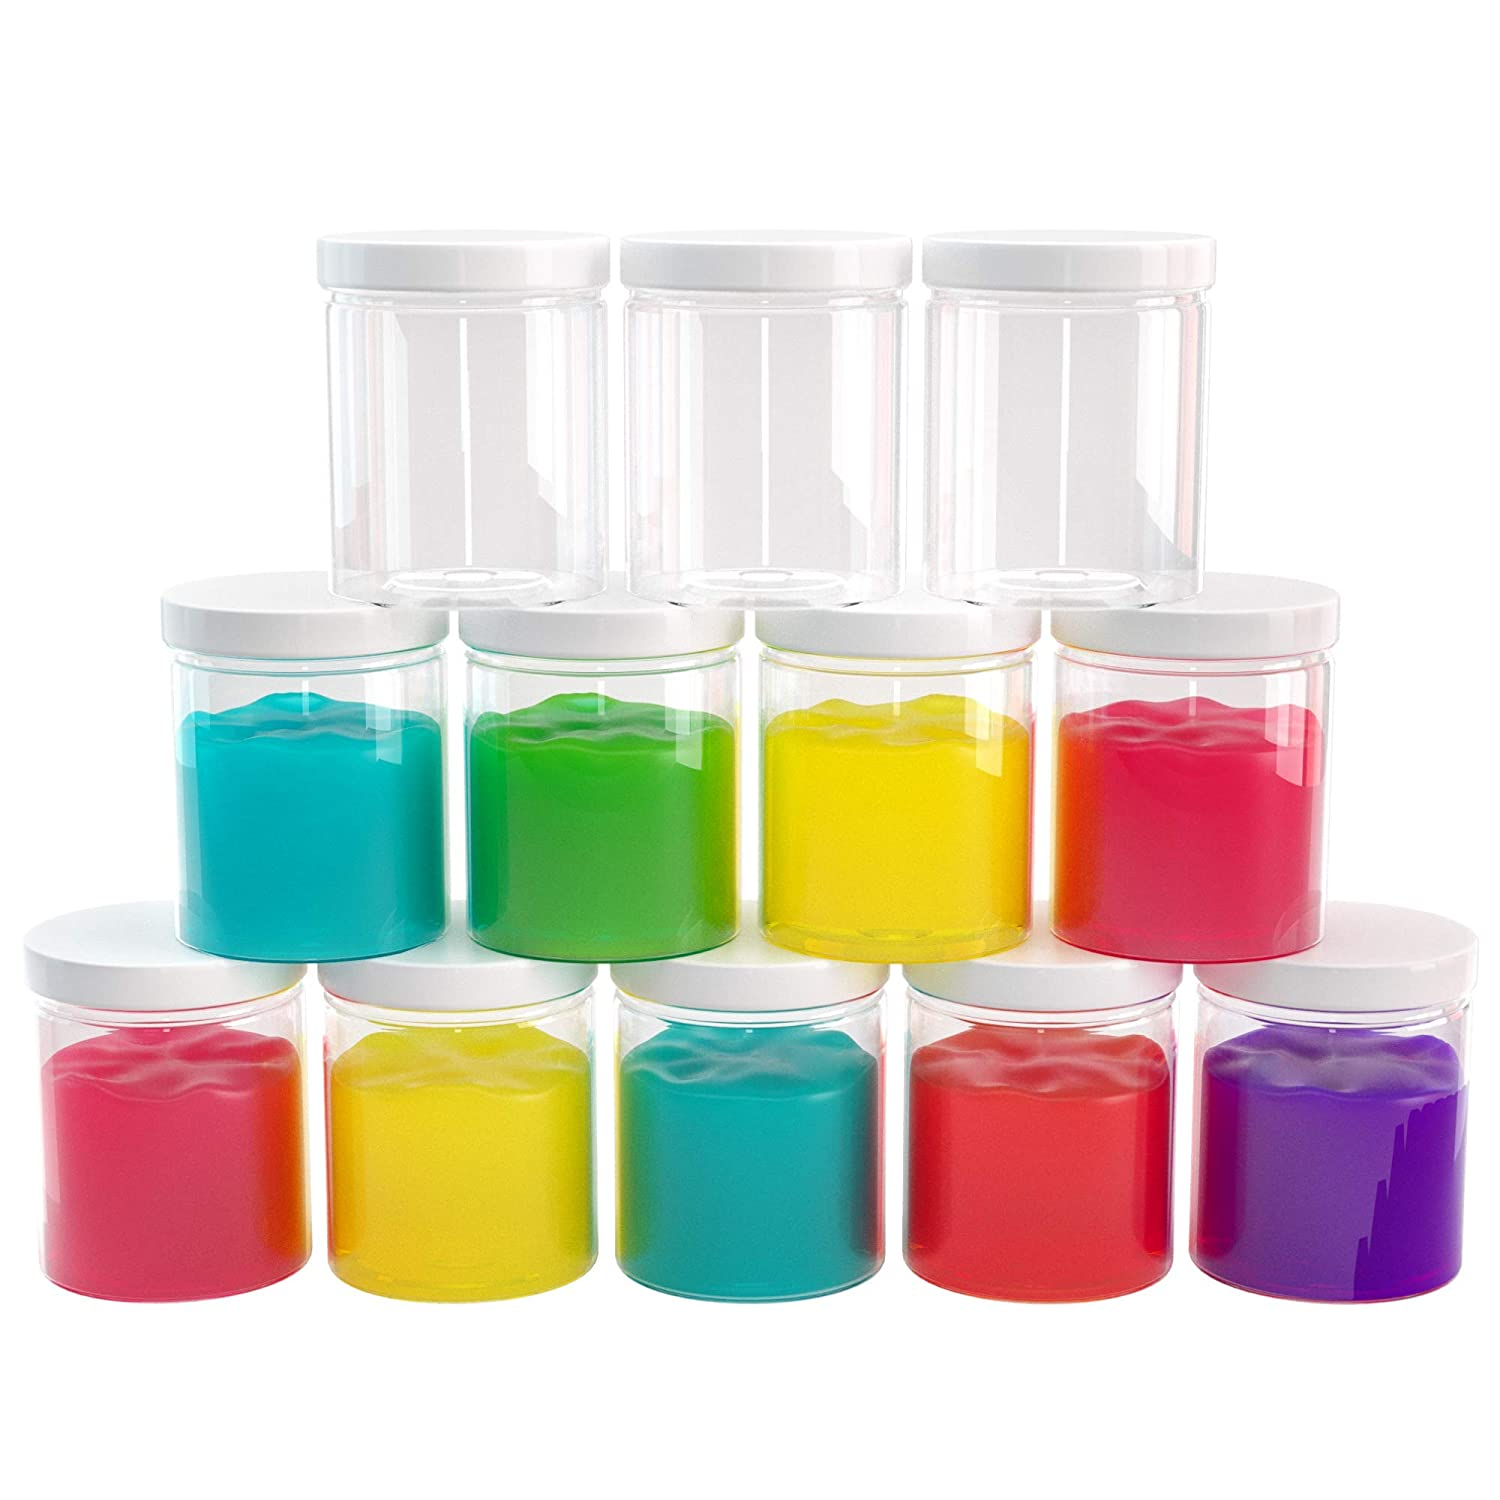 Slime Containers with Airtight Lids